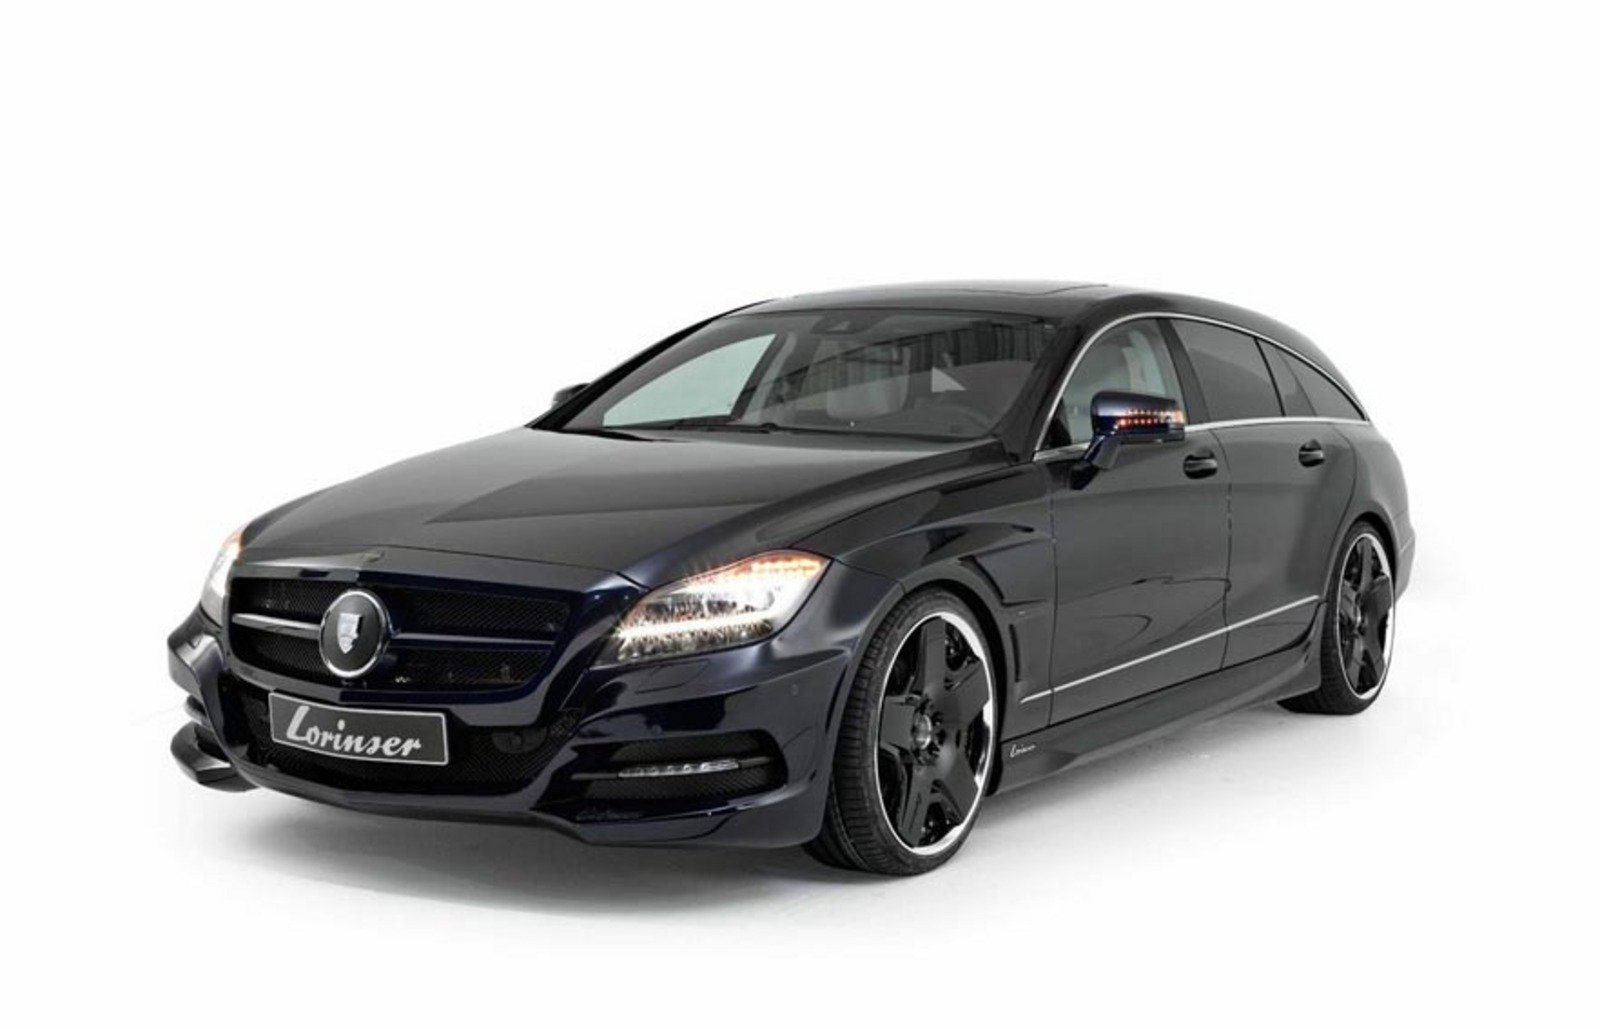 2013 mercedes benz cls shooting brake by lorinser review for Mercedes benz cls station wagon